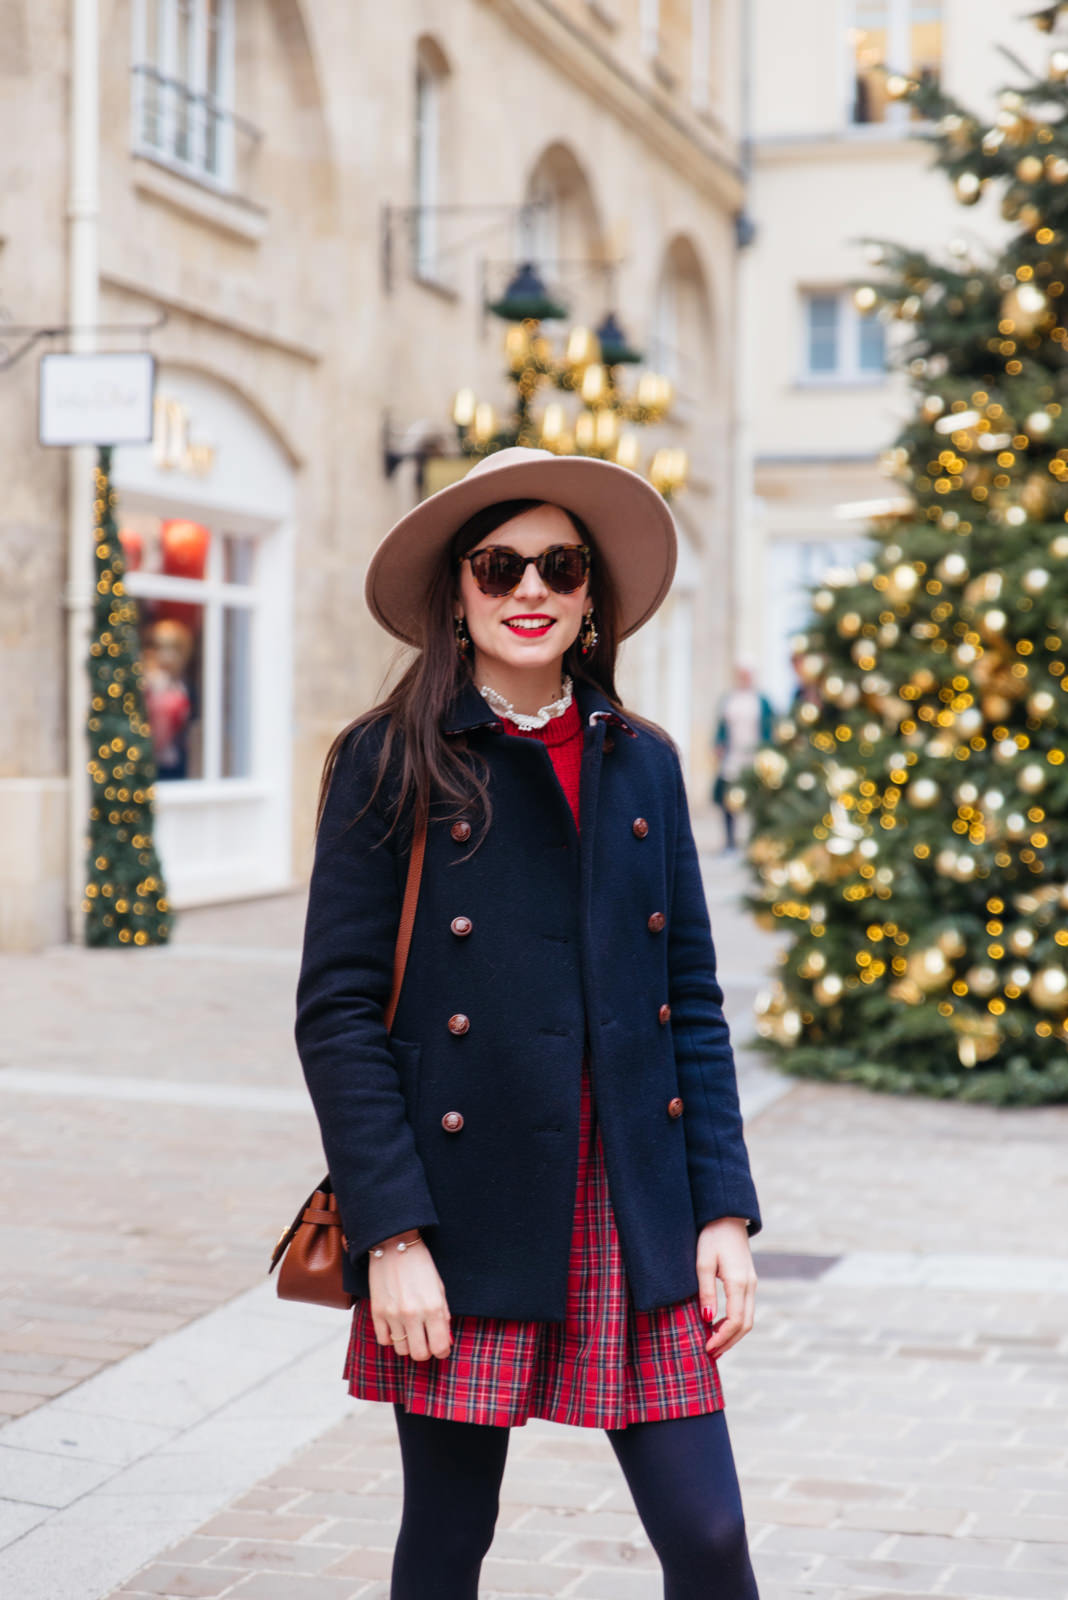 Blog-Mode-And-The-City-Lifestyle-Look-Manteau-Trench-Coat-Village-Royal-3 copie